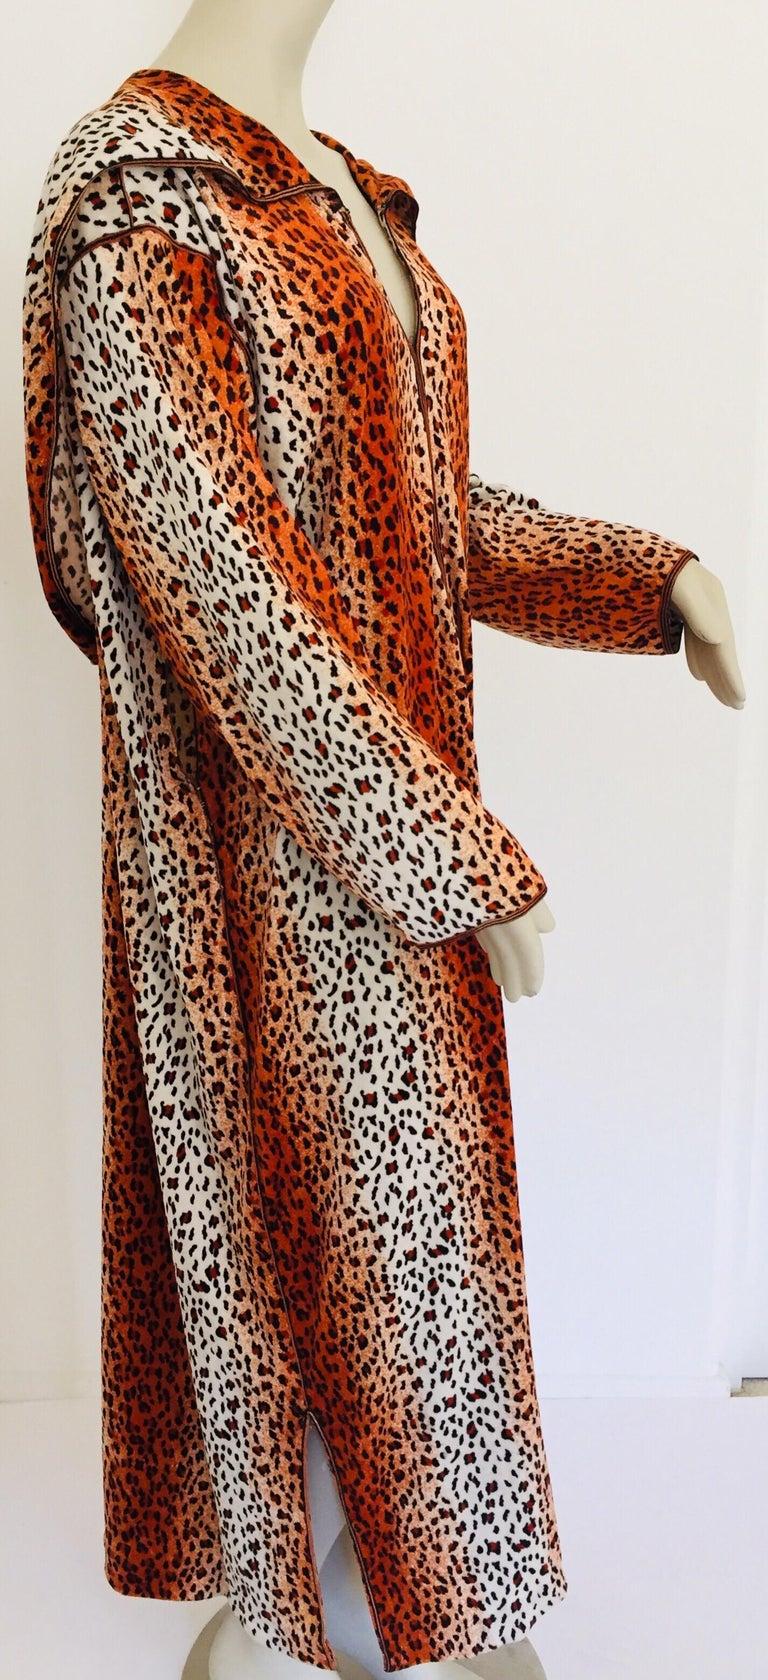 1970s Moroccan Hooded Caftan Animal Print Djellabah Kaftan In Good Condition For Sale In North Hollywood, CA